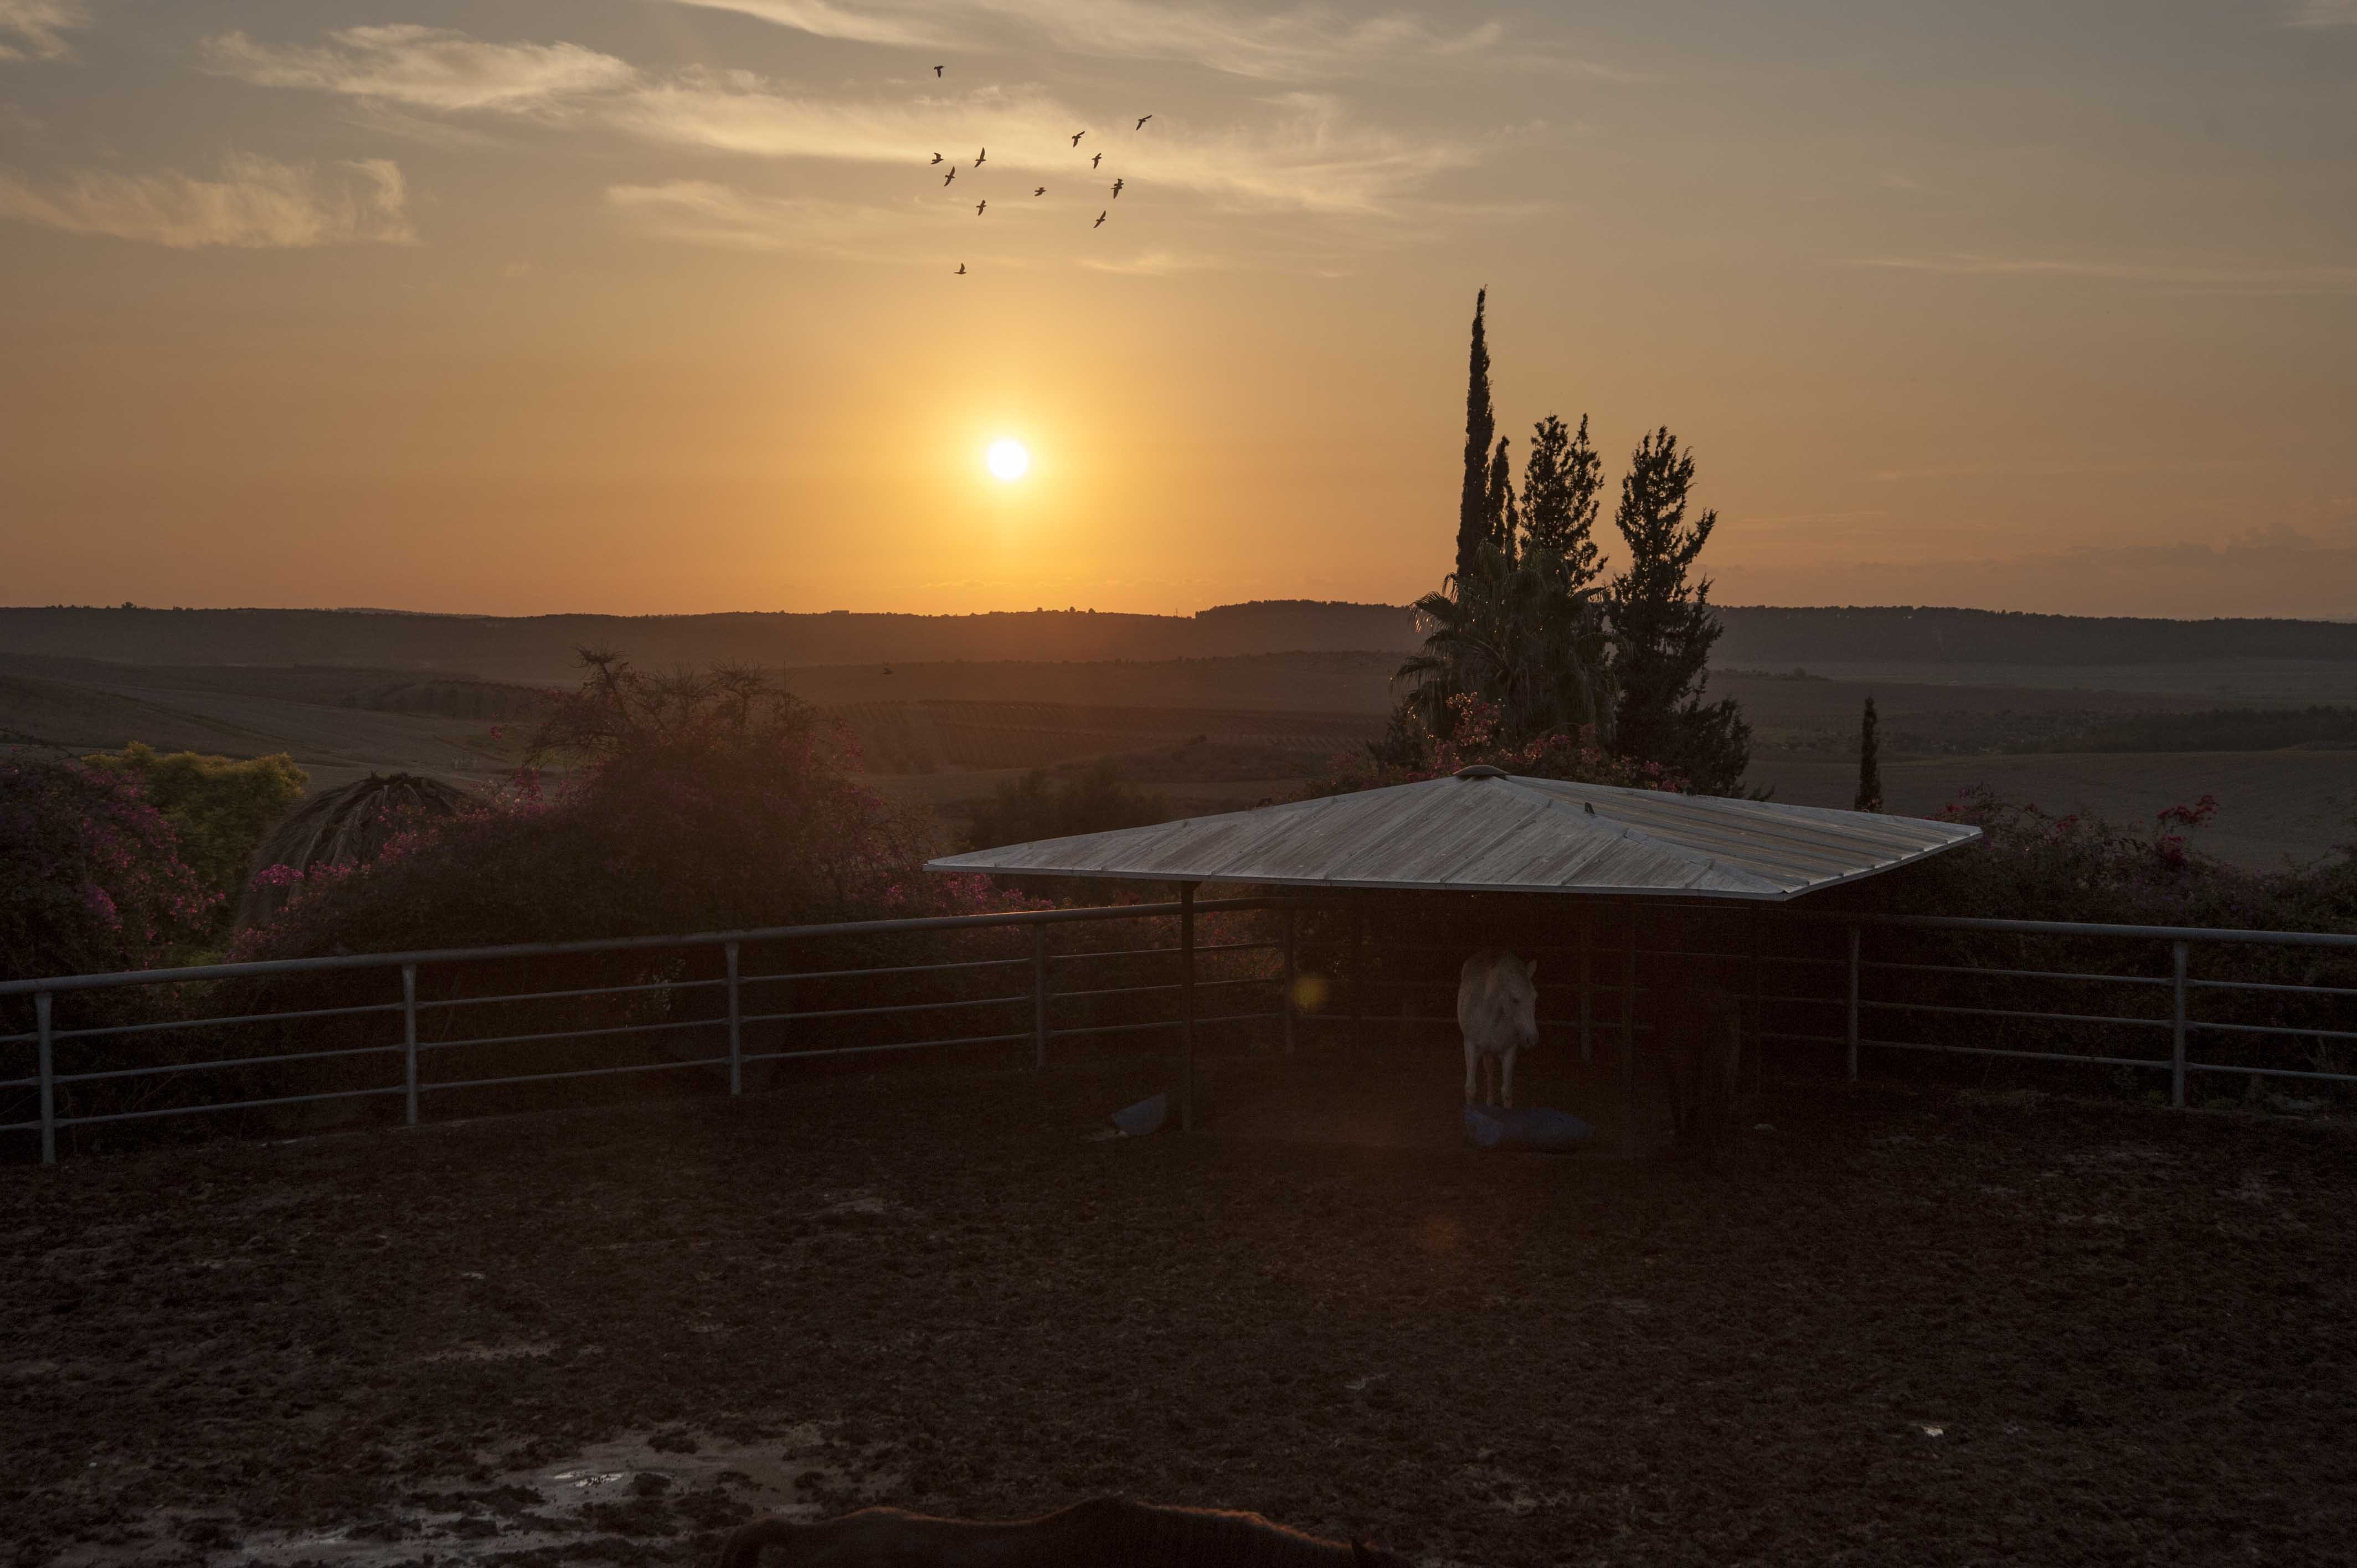 A pony standing under a low wooden roof at the edge of an enclosure during sunset